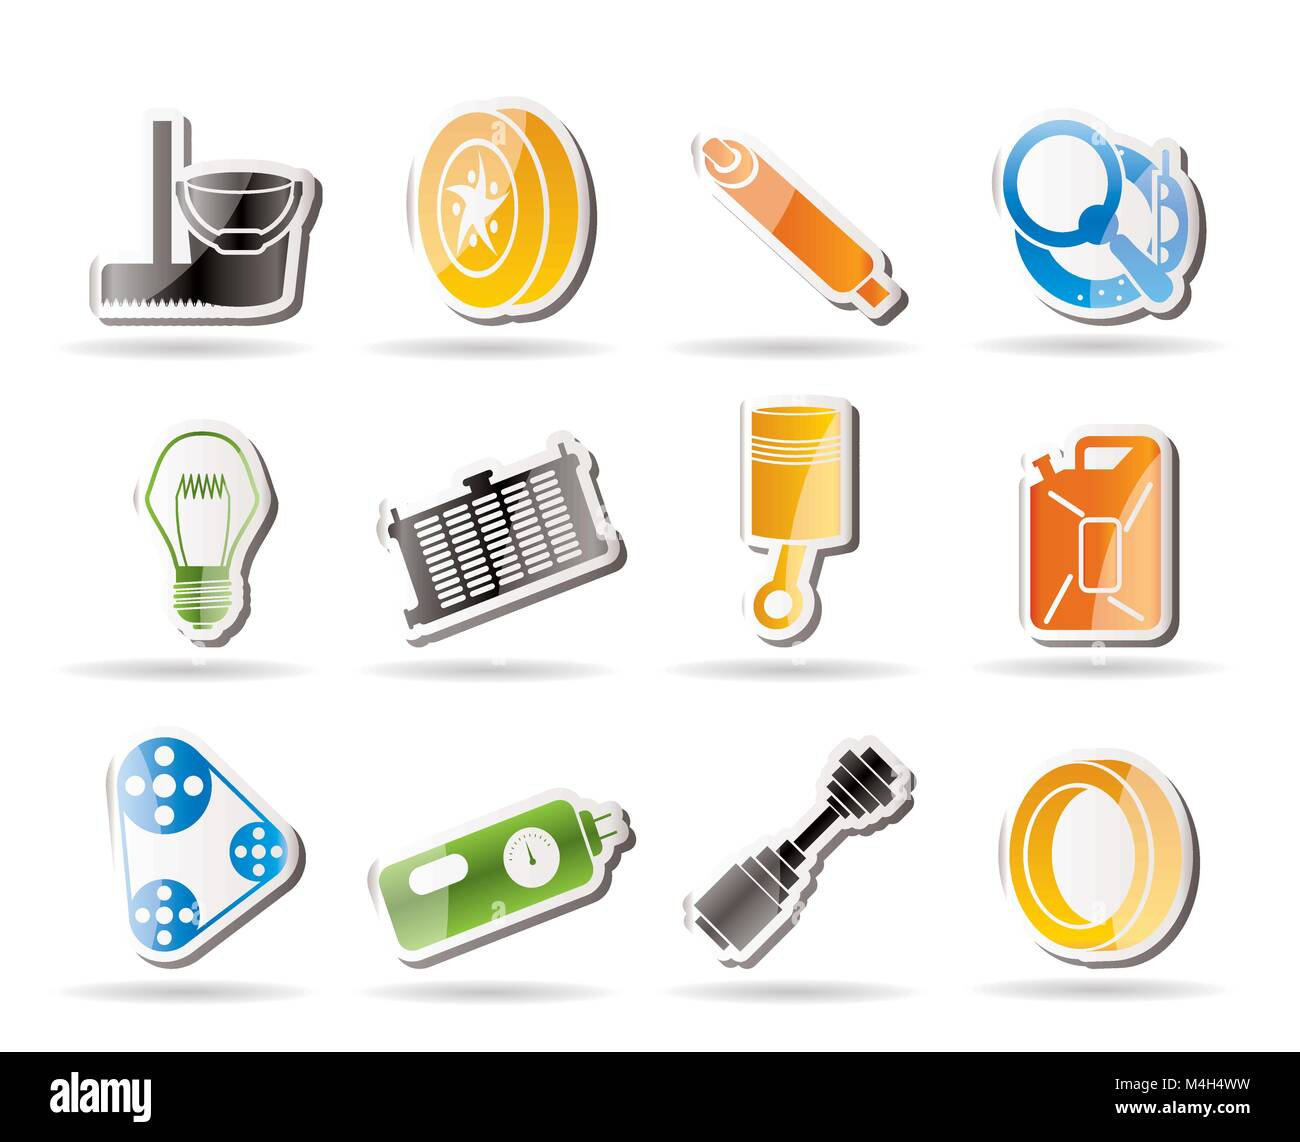 Gas Service Bottle Stock Photos Amp Gas Service Bottle Stock Images Alamy